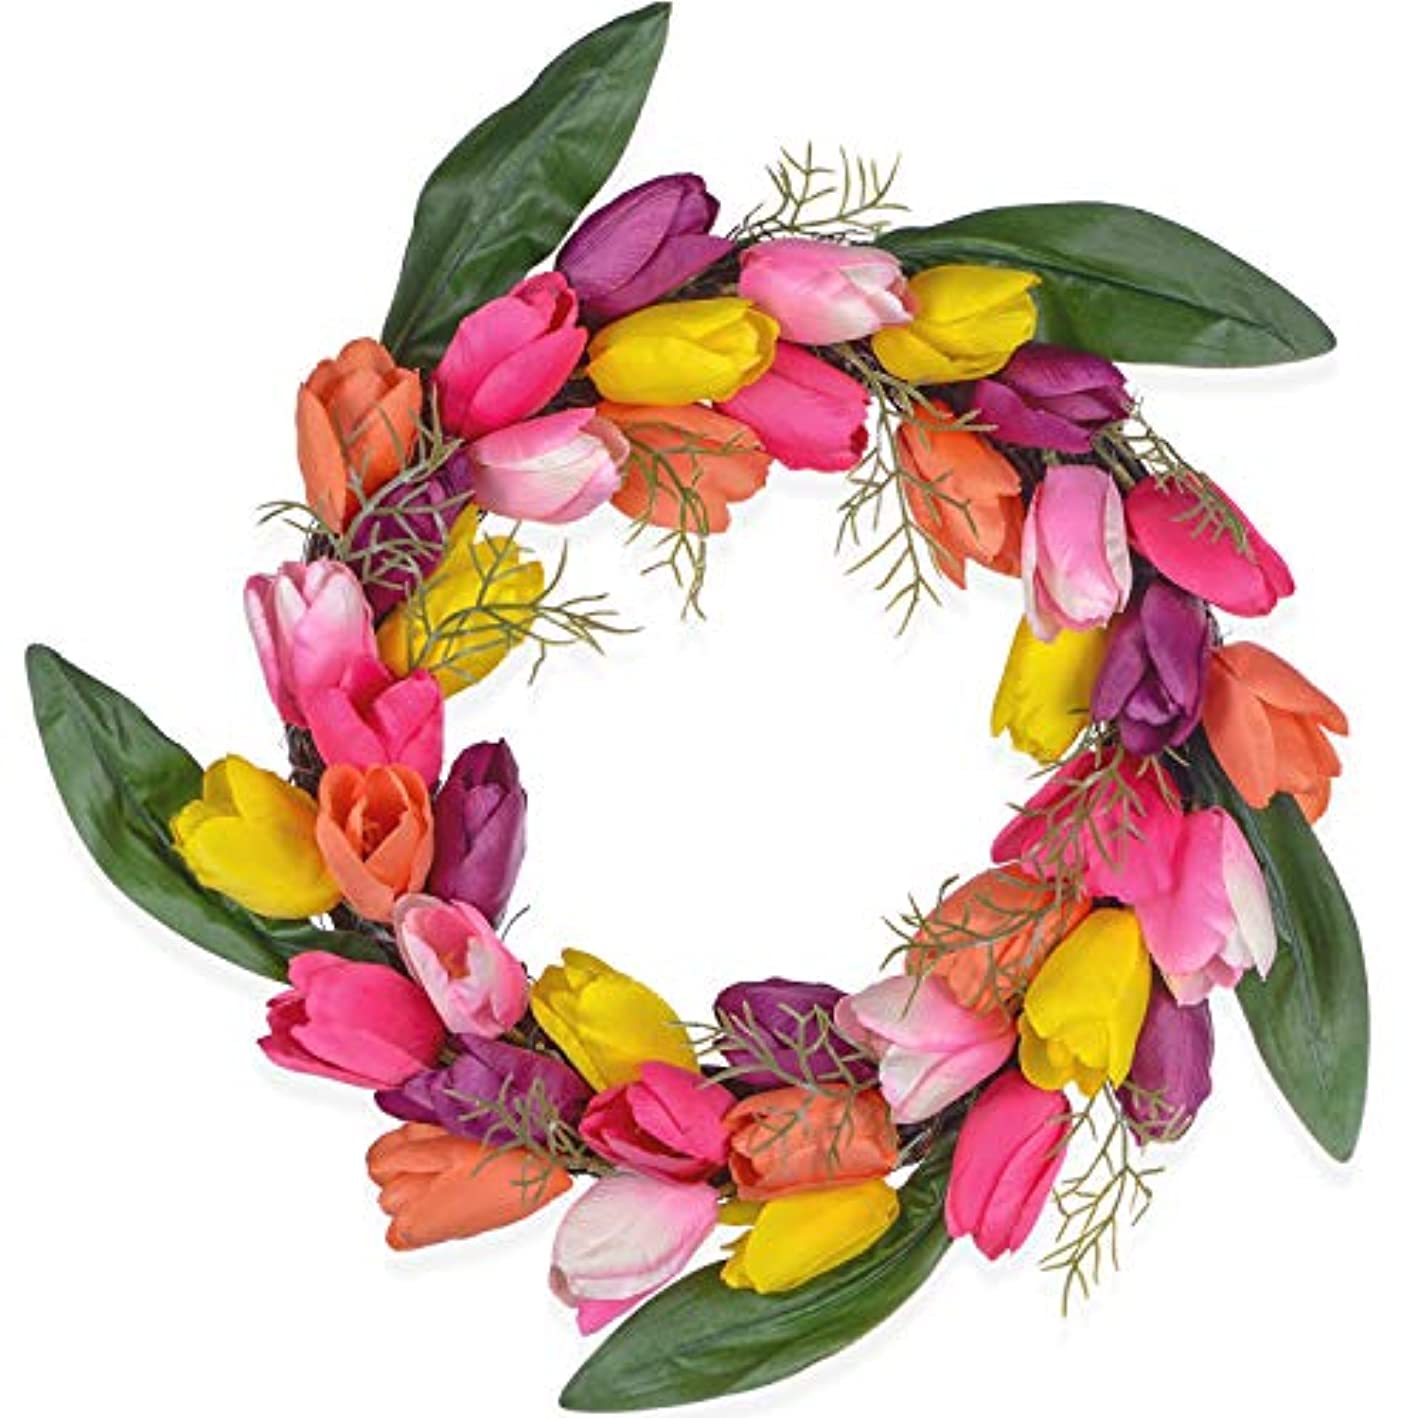 DearHouse Artificial Tulip Flower Wreath, 13 Inch Colorful Silk Tulips Front Door Wreath with Green Leaves Decor for Home Wall Wedding